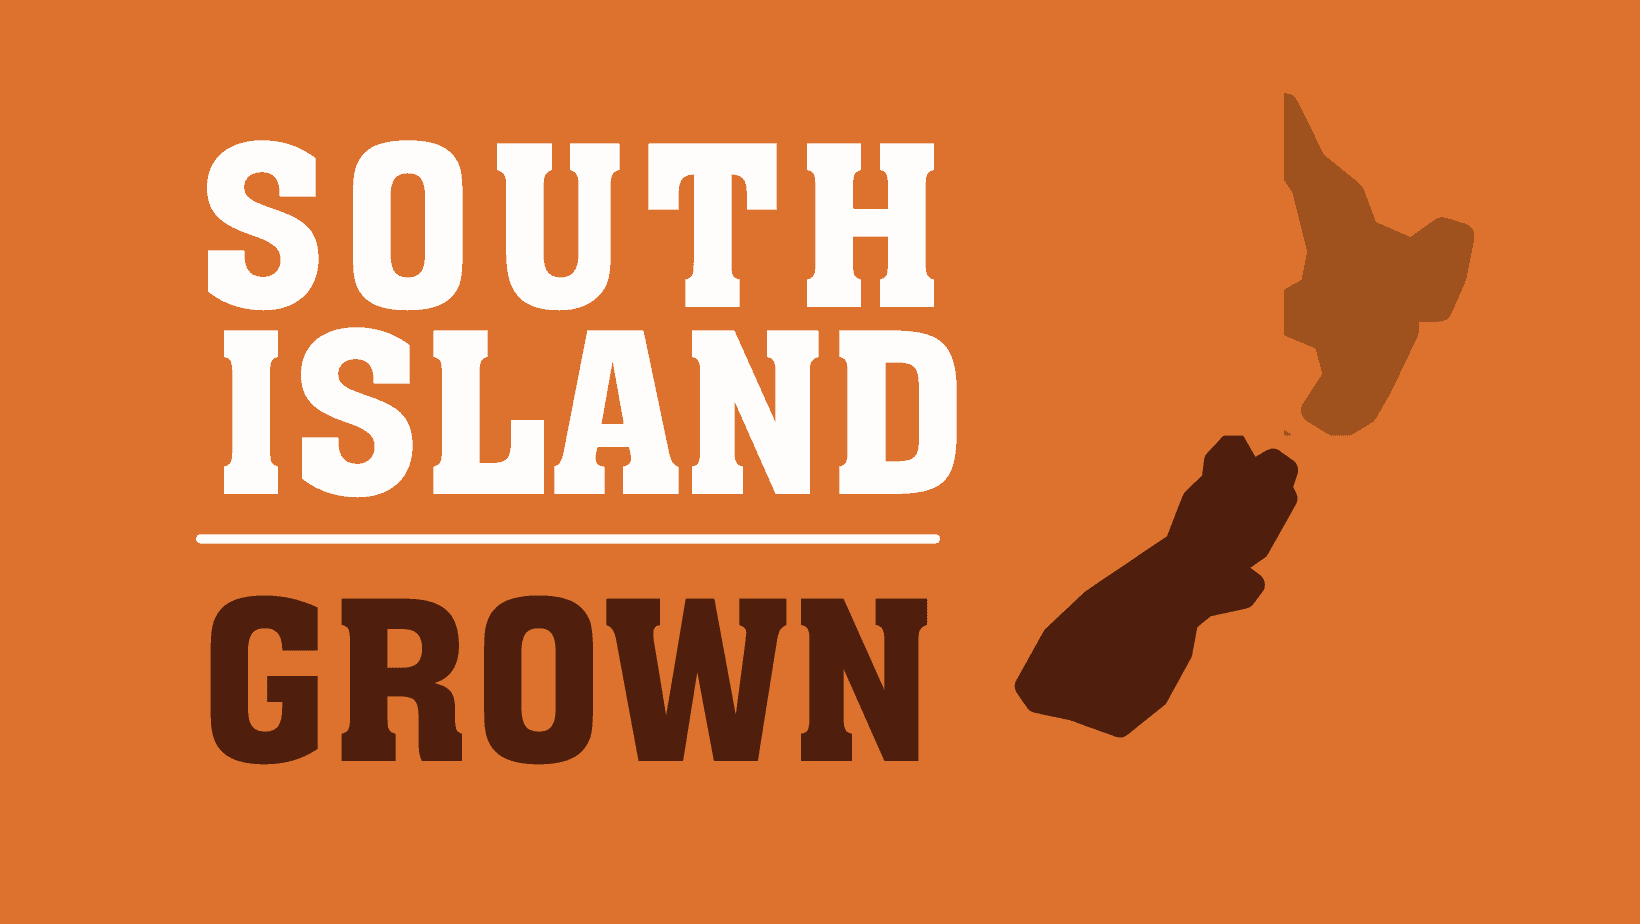 Copy of Copy of SOUTH ISLAND GROWN